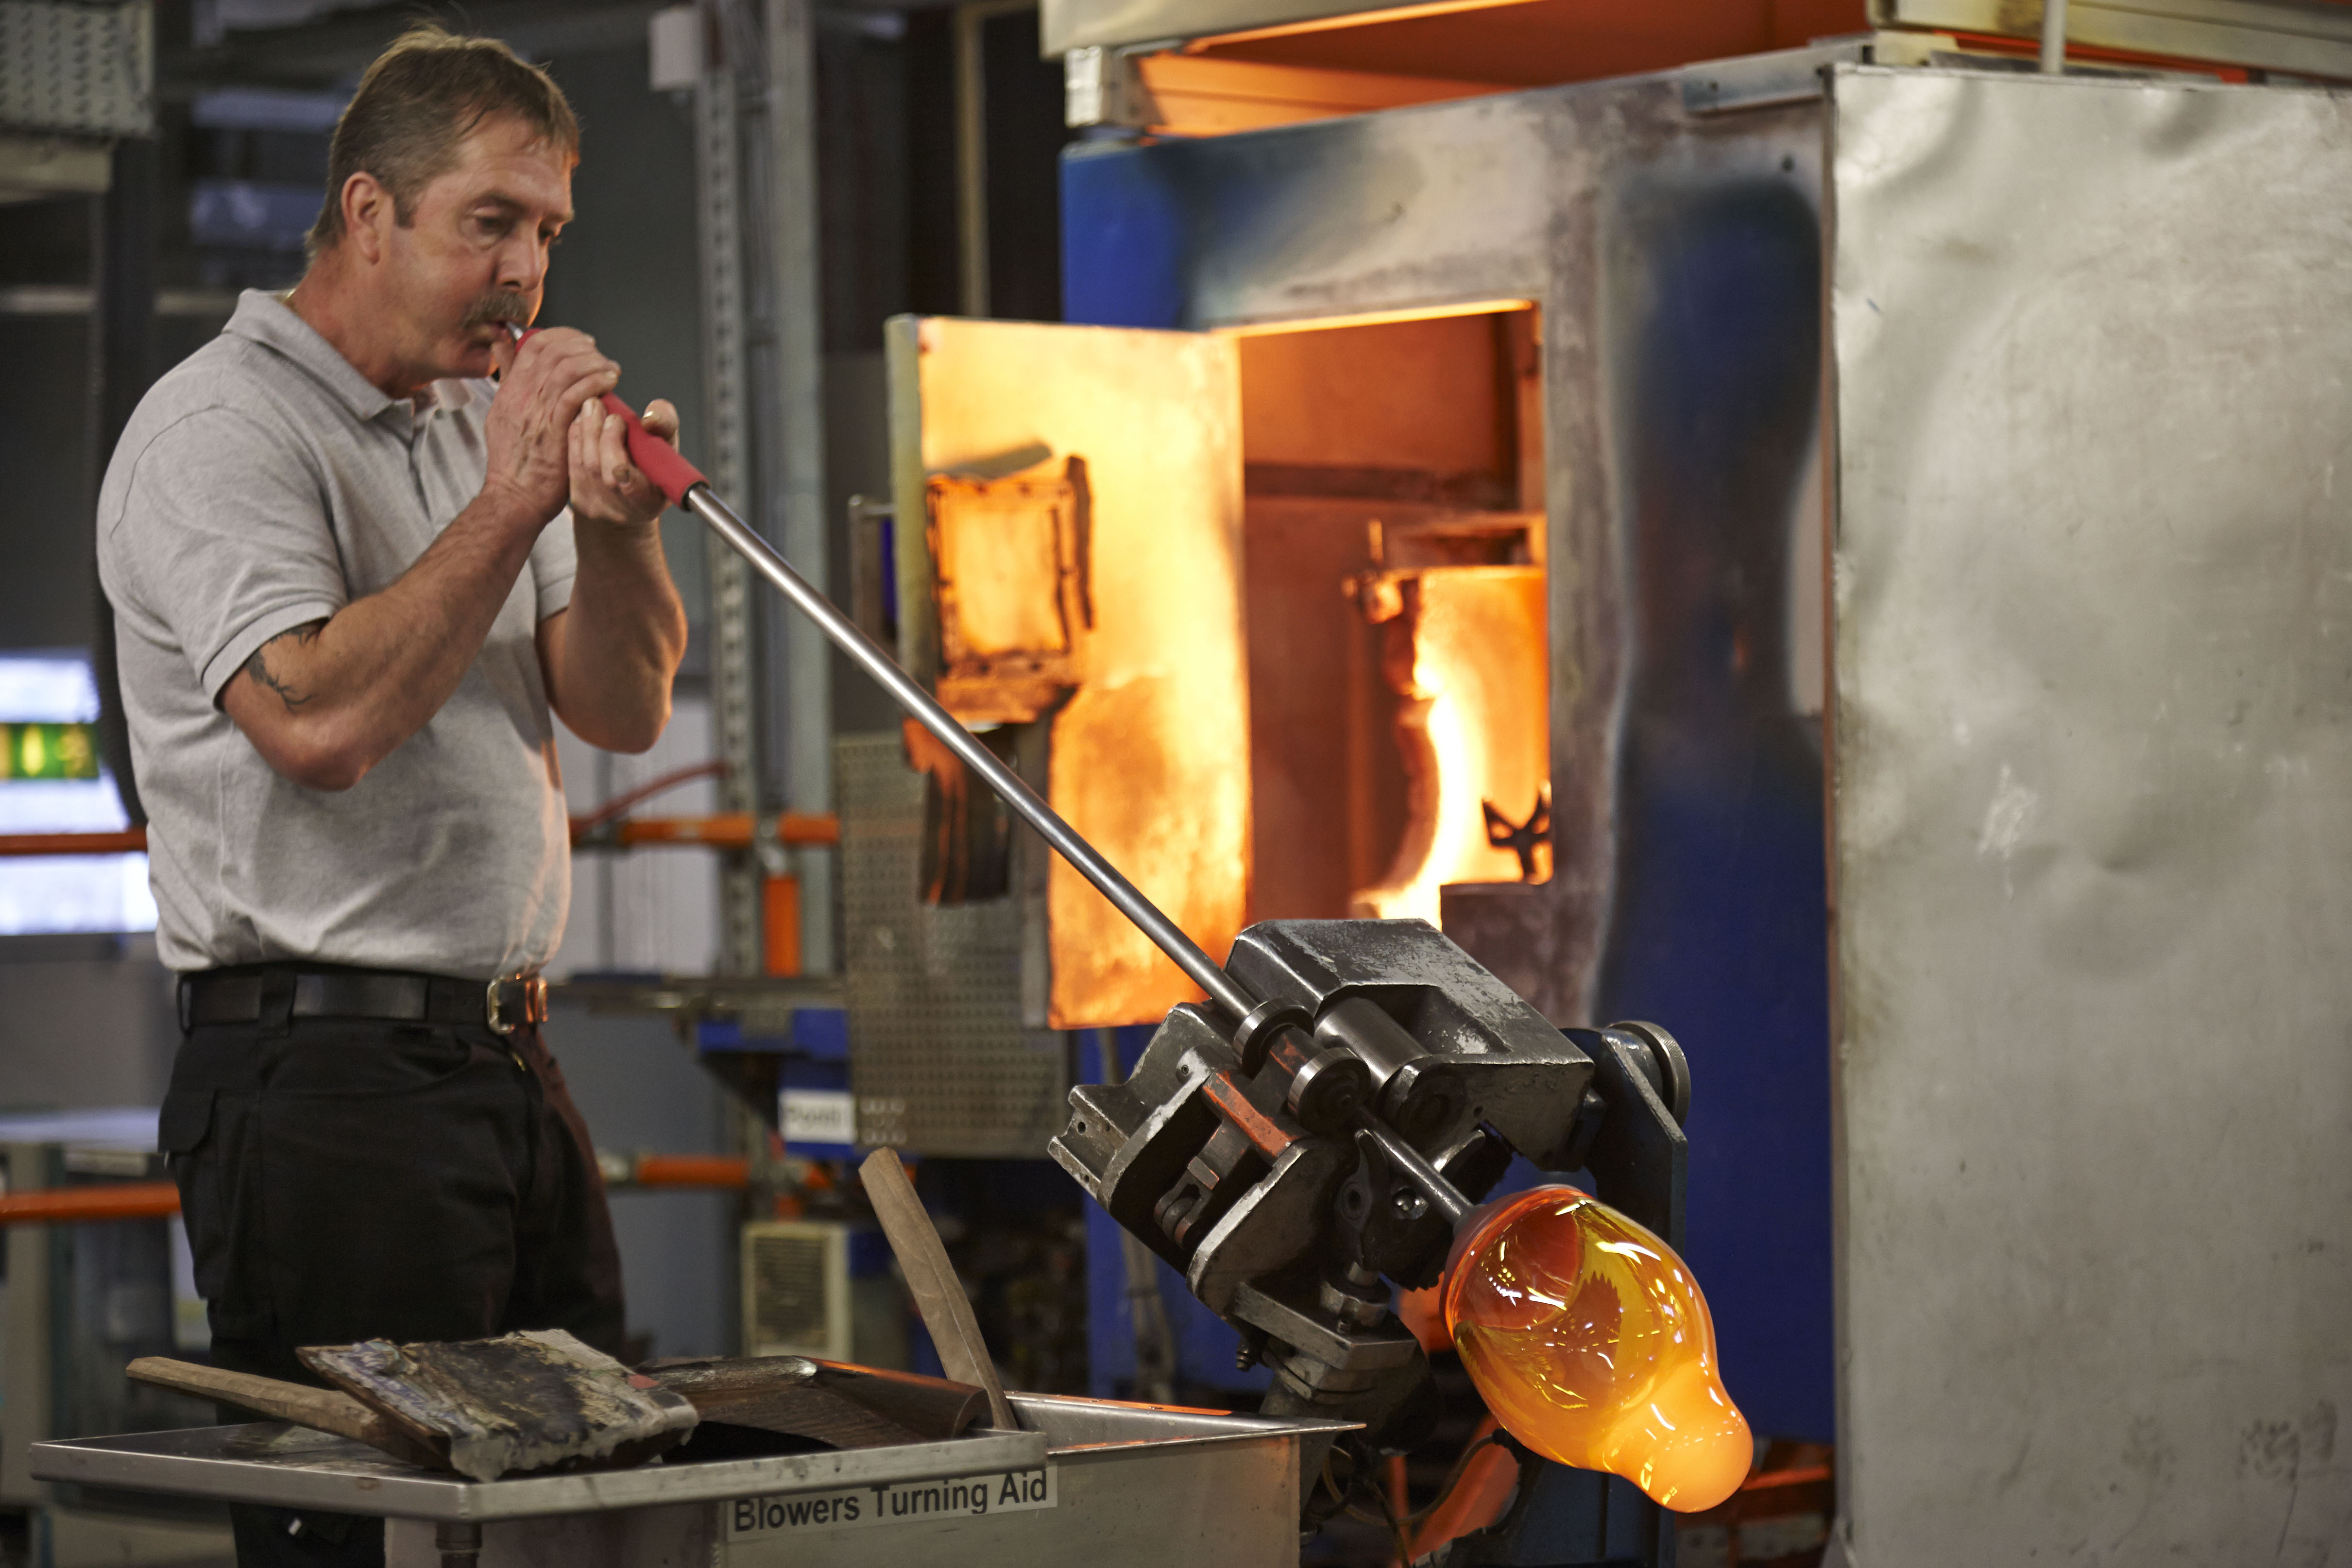 Waterford glass blower